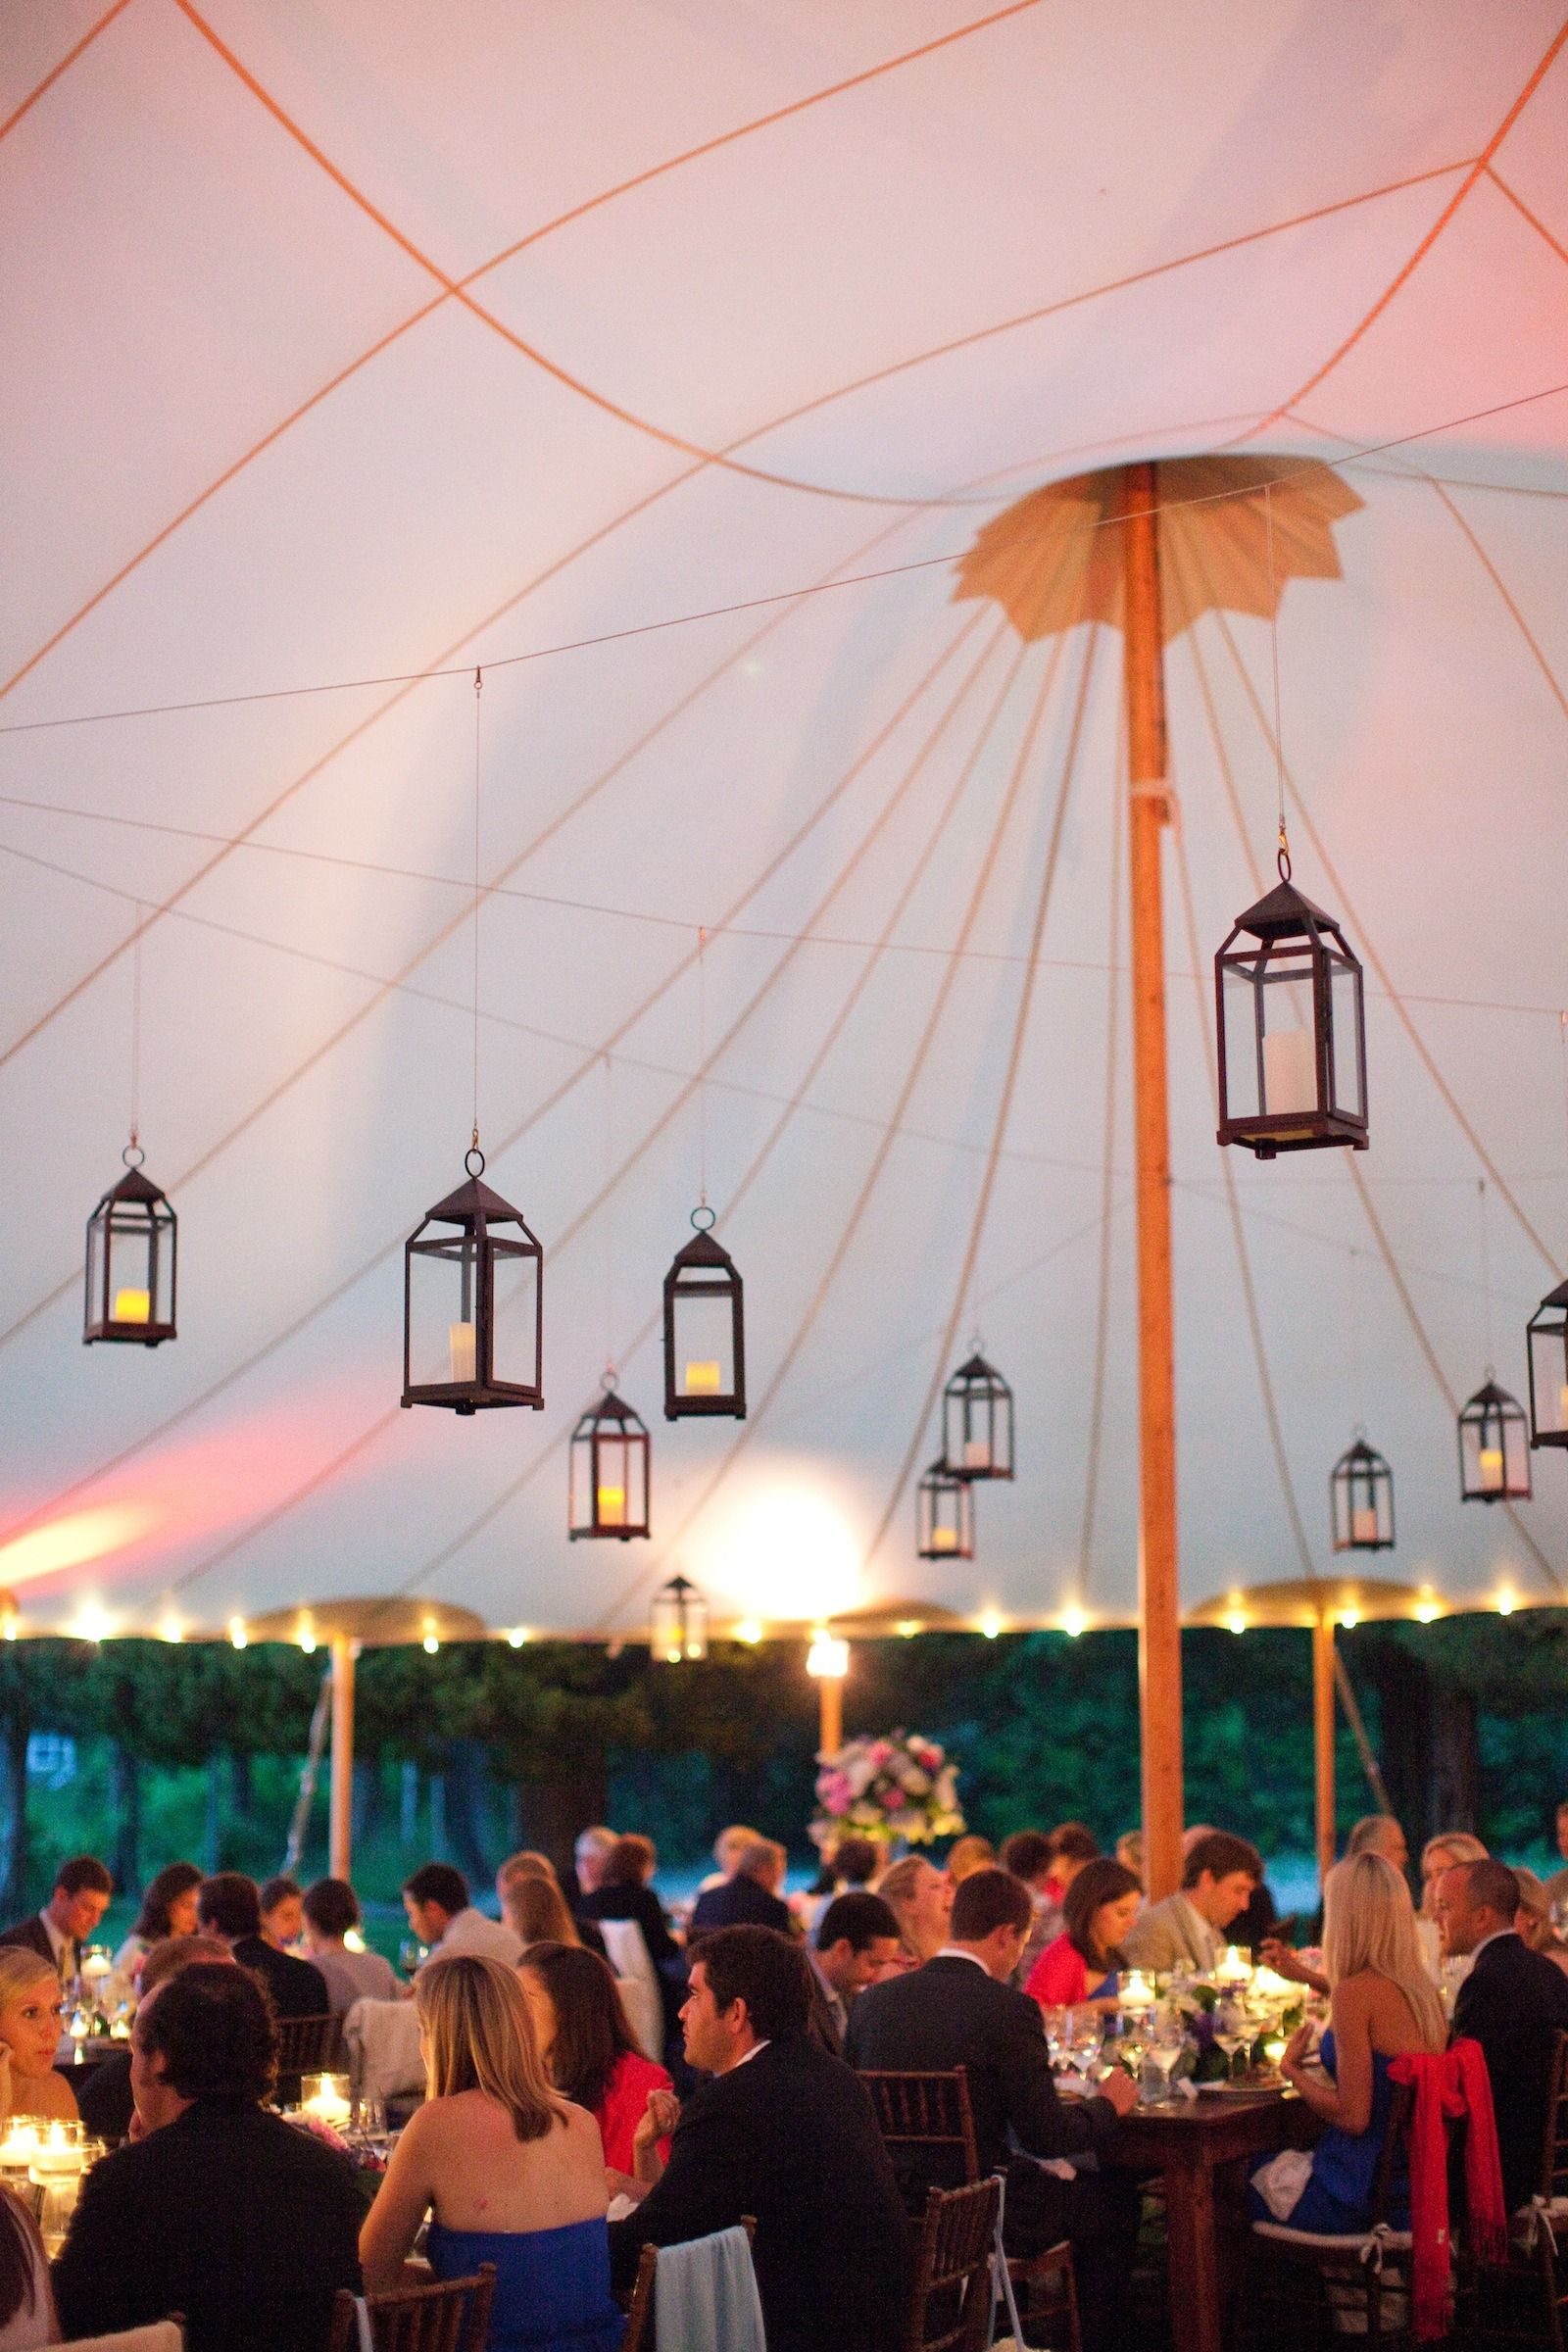 Whimsical, hanging lanterns from the top of this Sperry Tent |  Tents: Sperry Tents - sperrytents.com